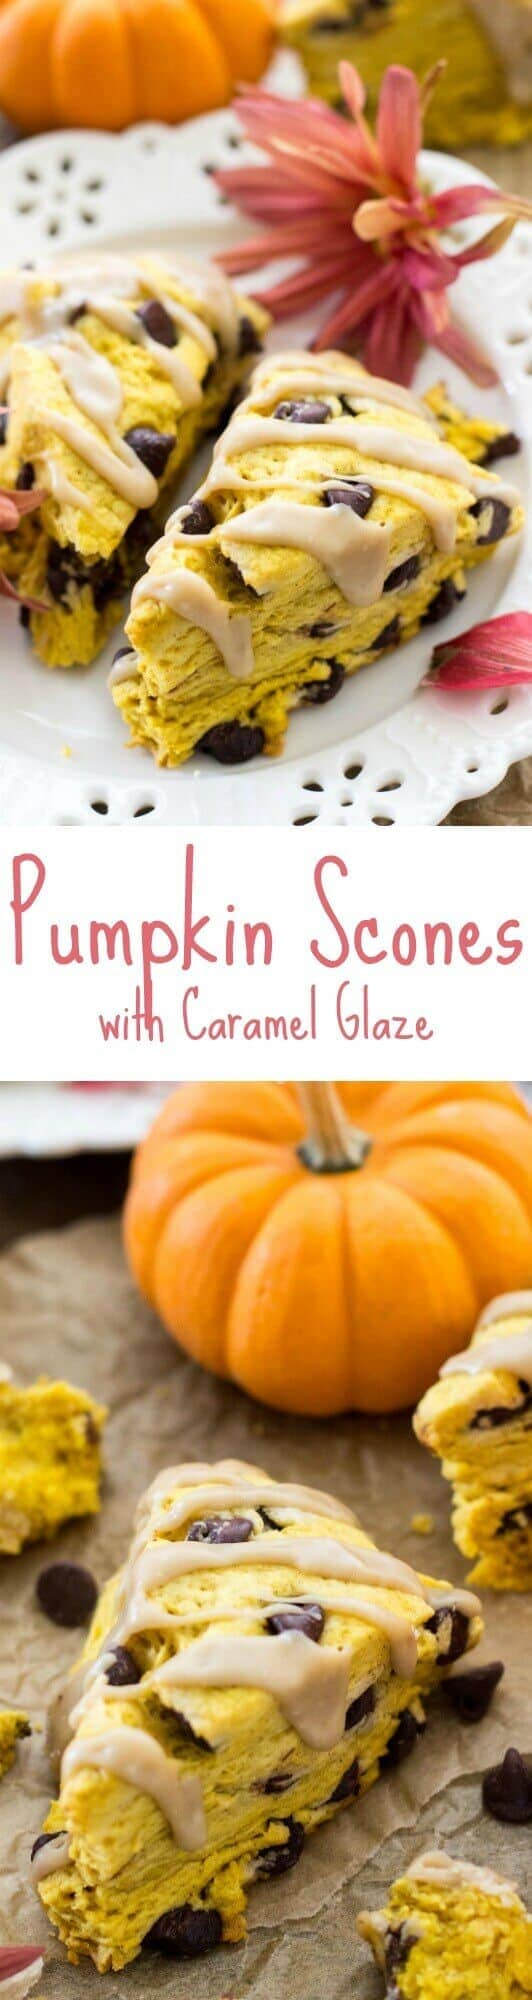 Pumpkin Scones with Caramel Glaze